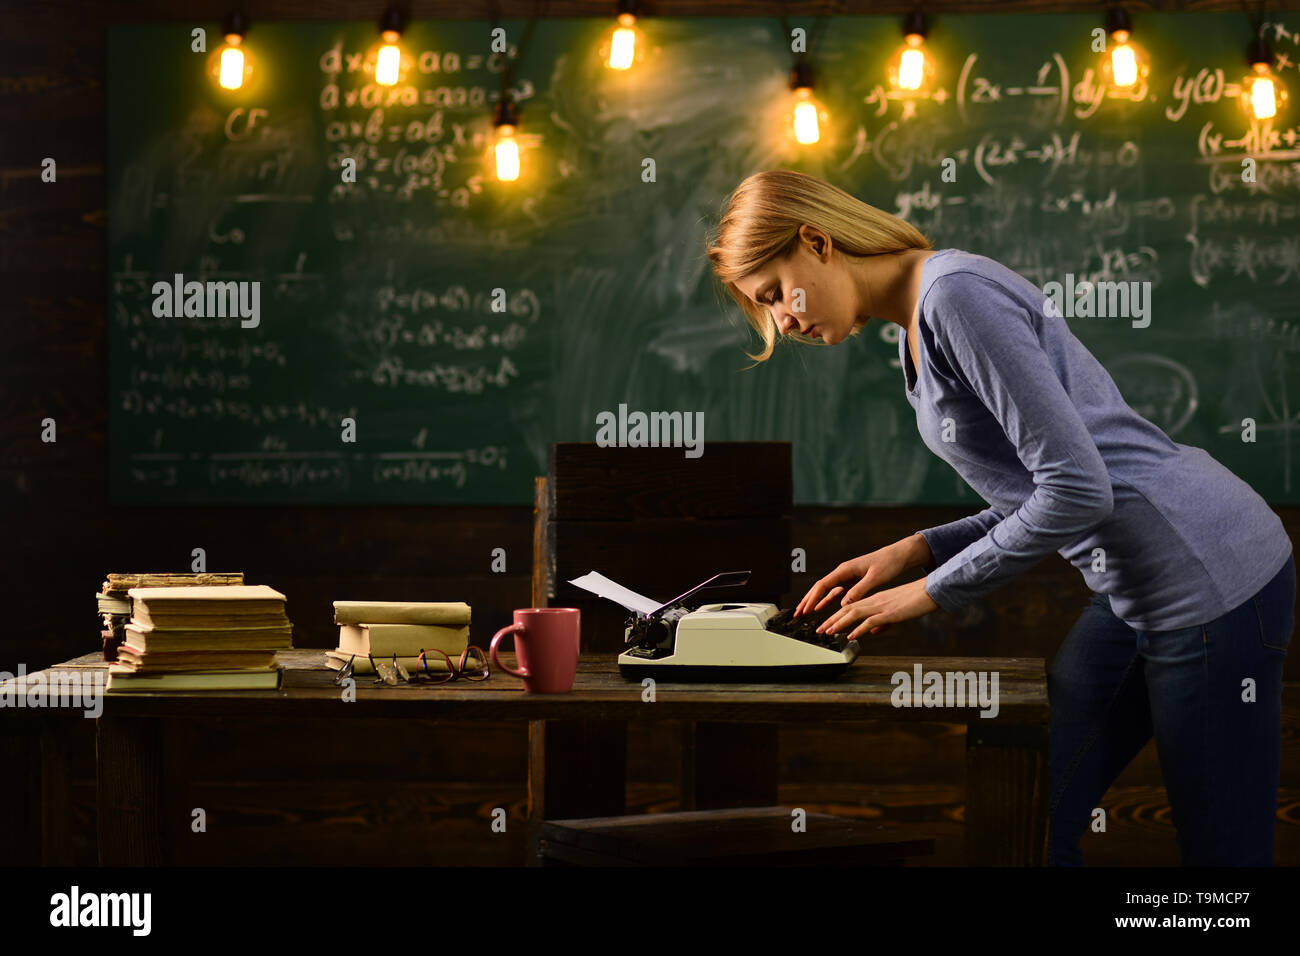 Private detective research. Information. Back to school and home schooling. Journalism. Literature and grammar education. Woman write love story novel - Stock Image